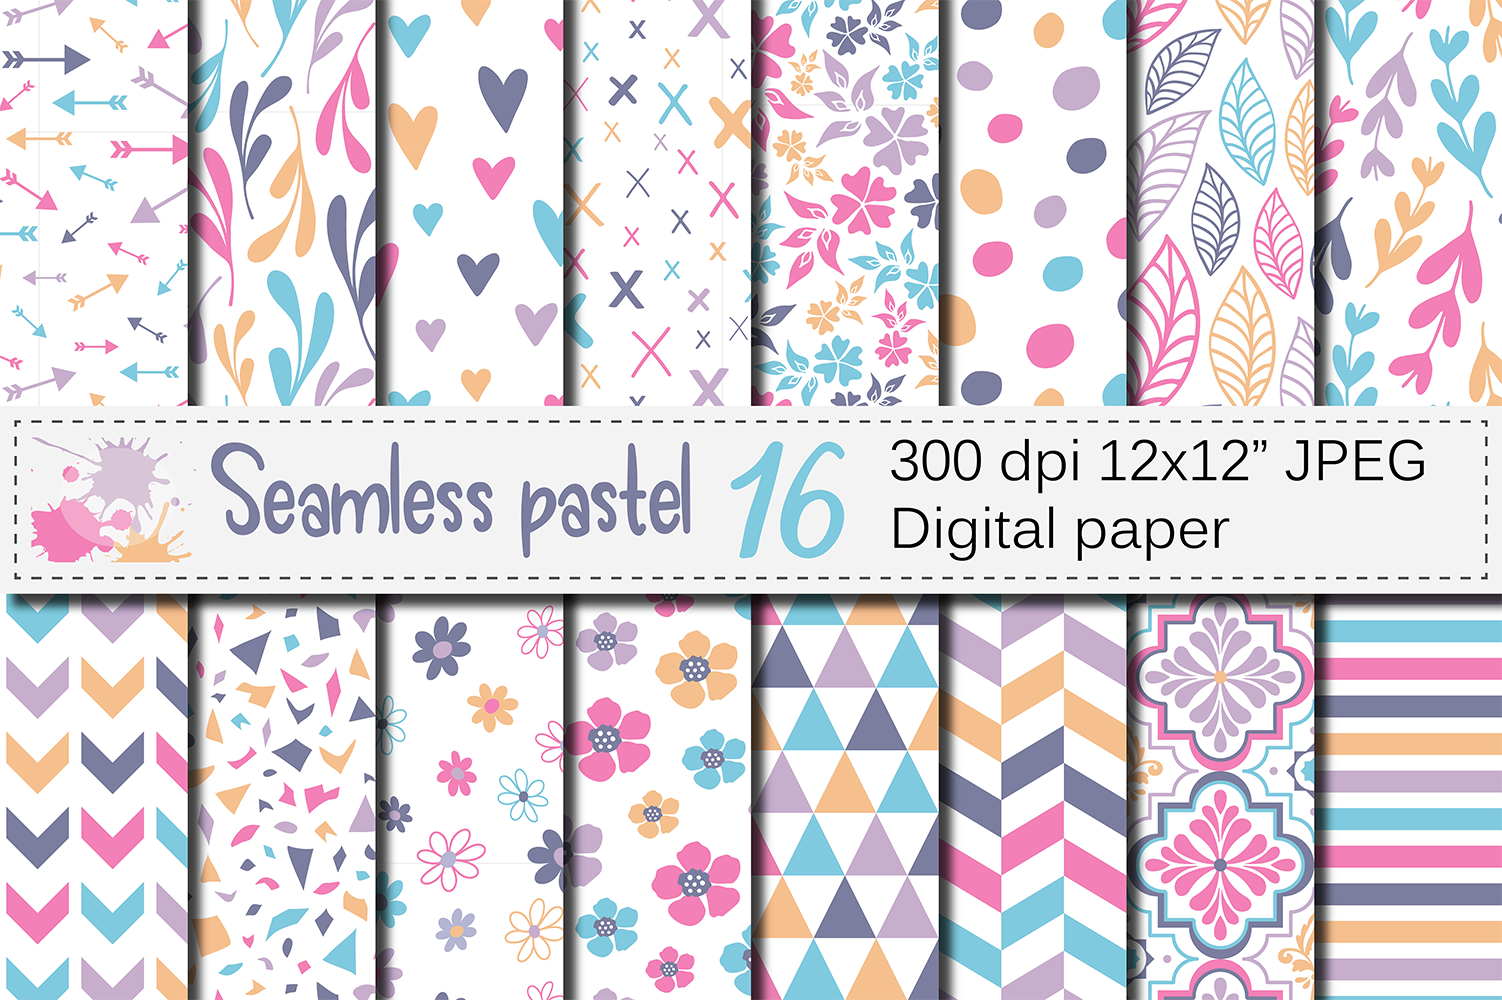 Seamless Pastel Digital Paper Pack Pastel Flowers And Leaves